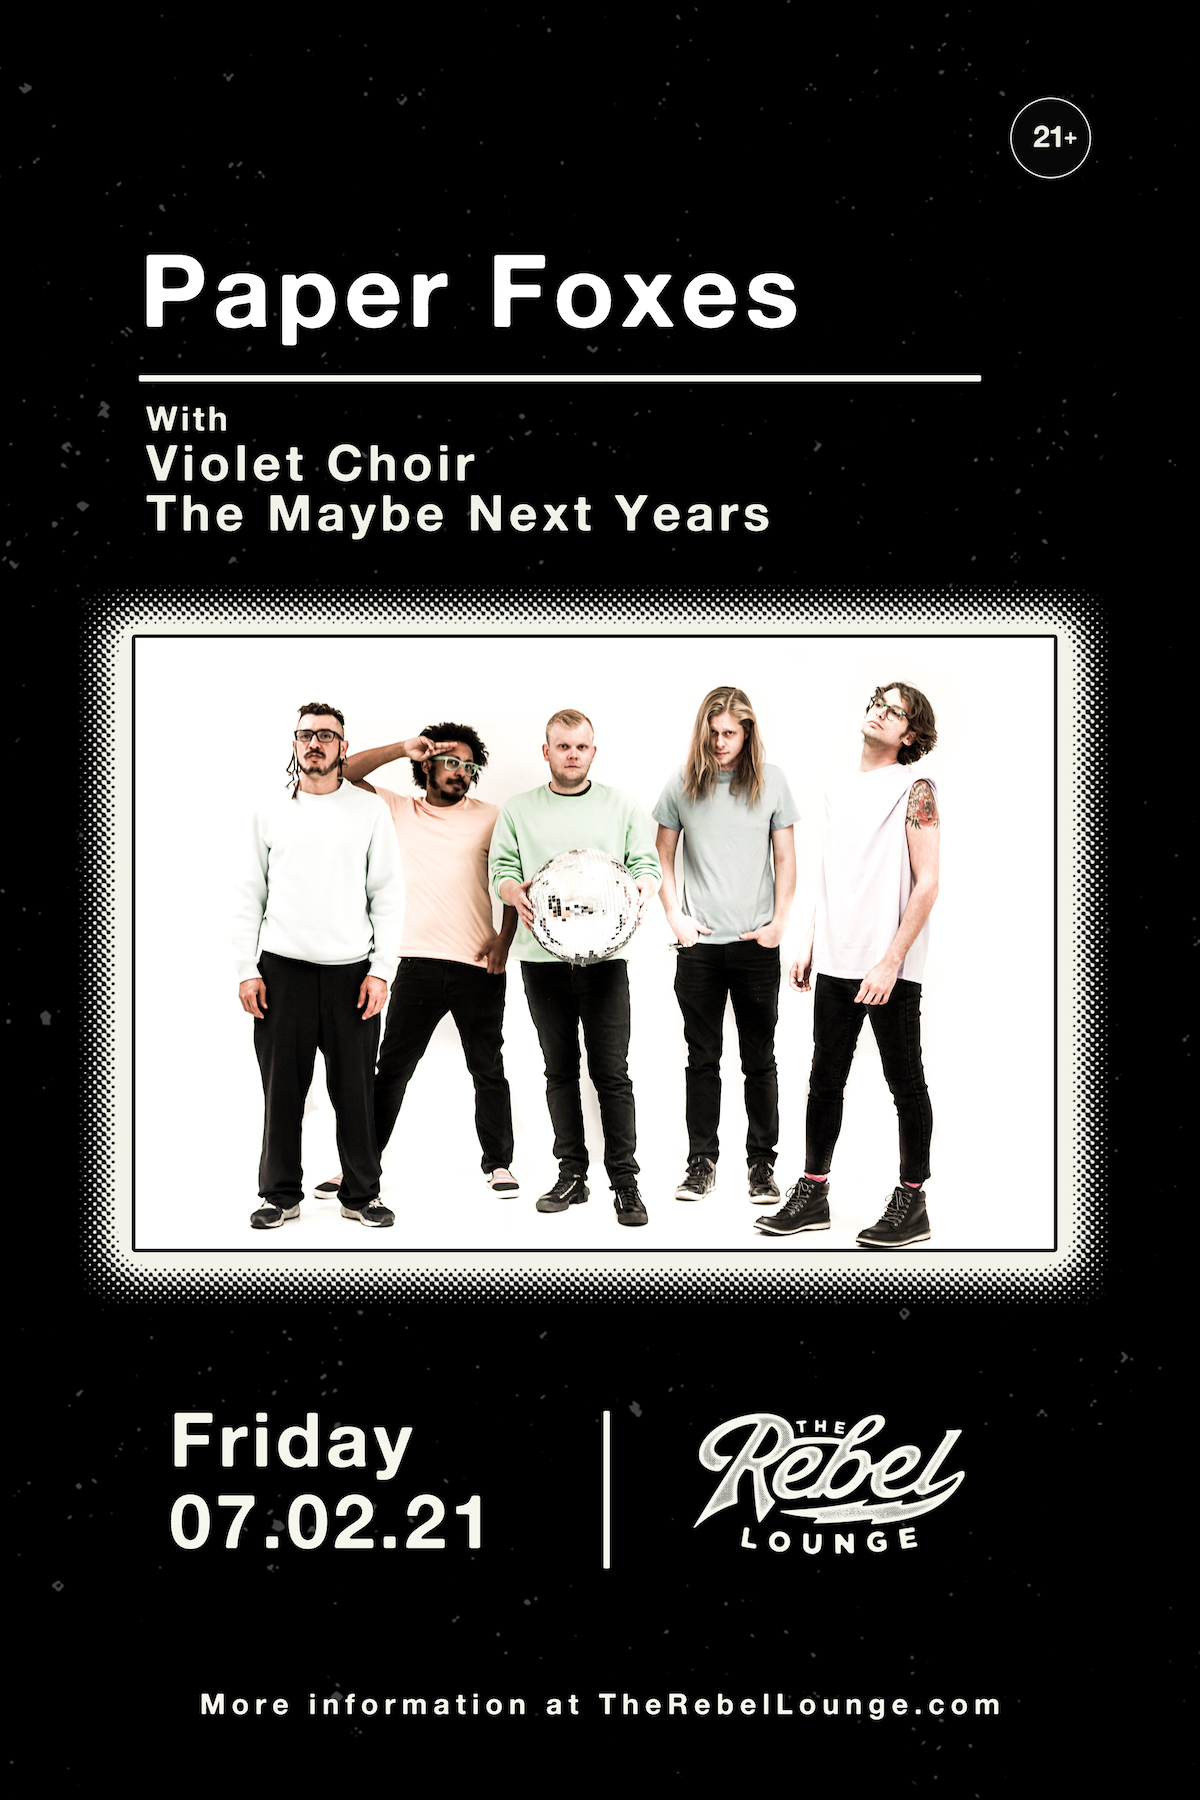 PAPER FOXES: Main Image